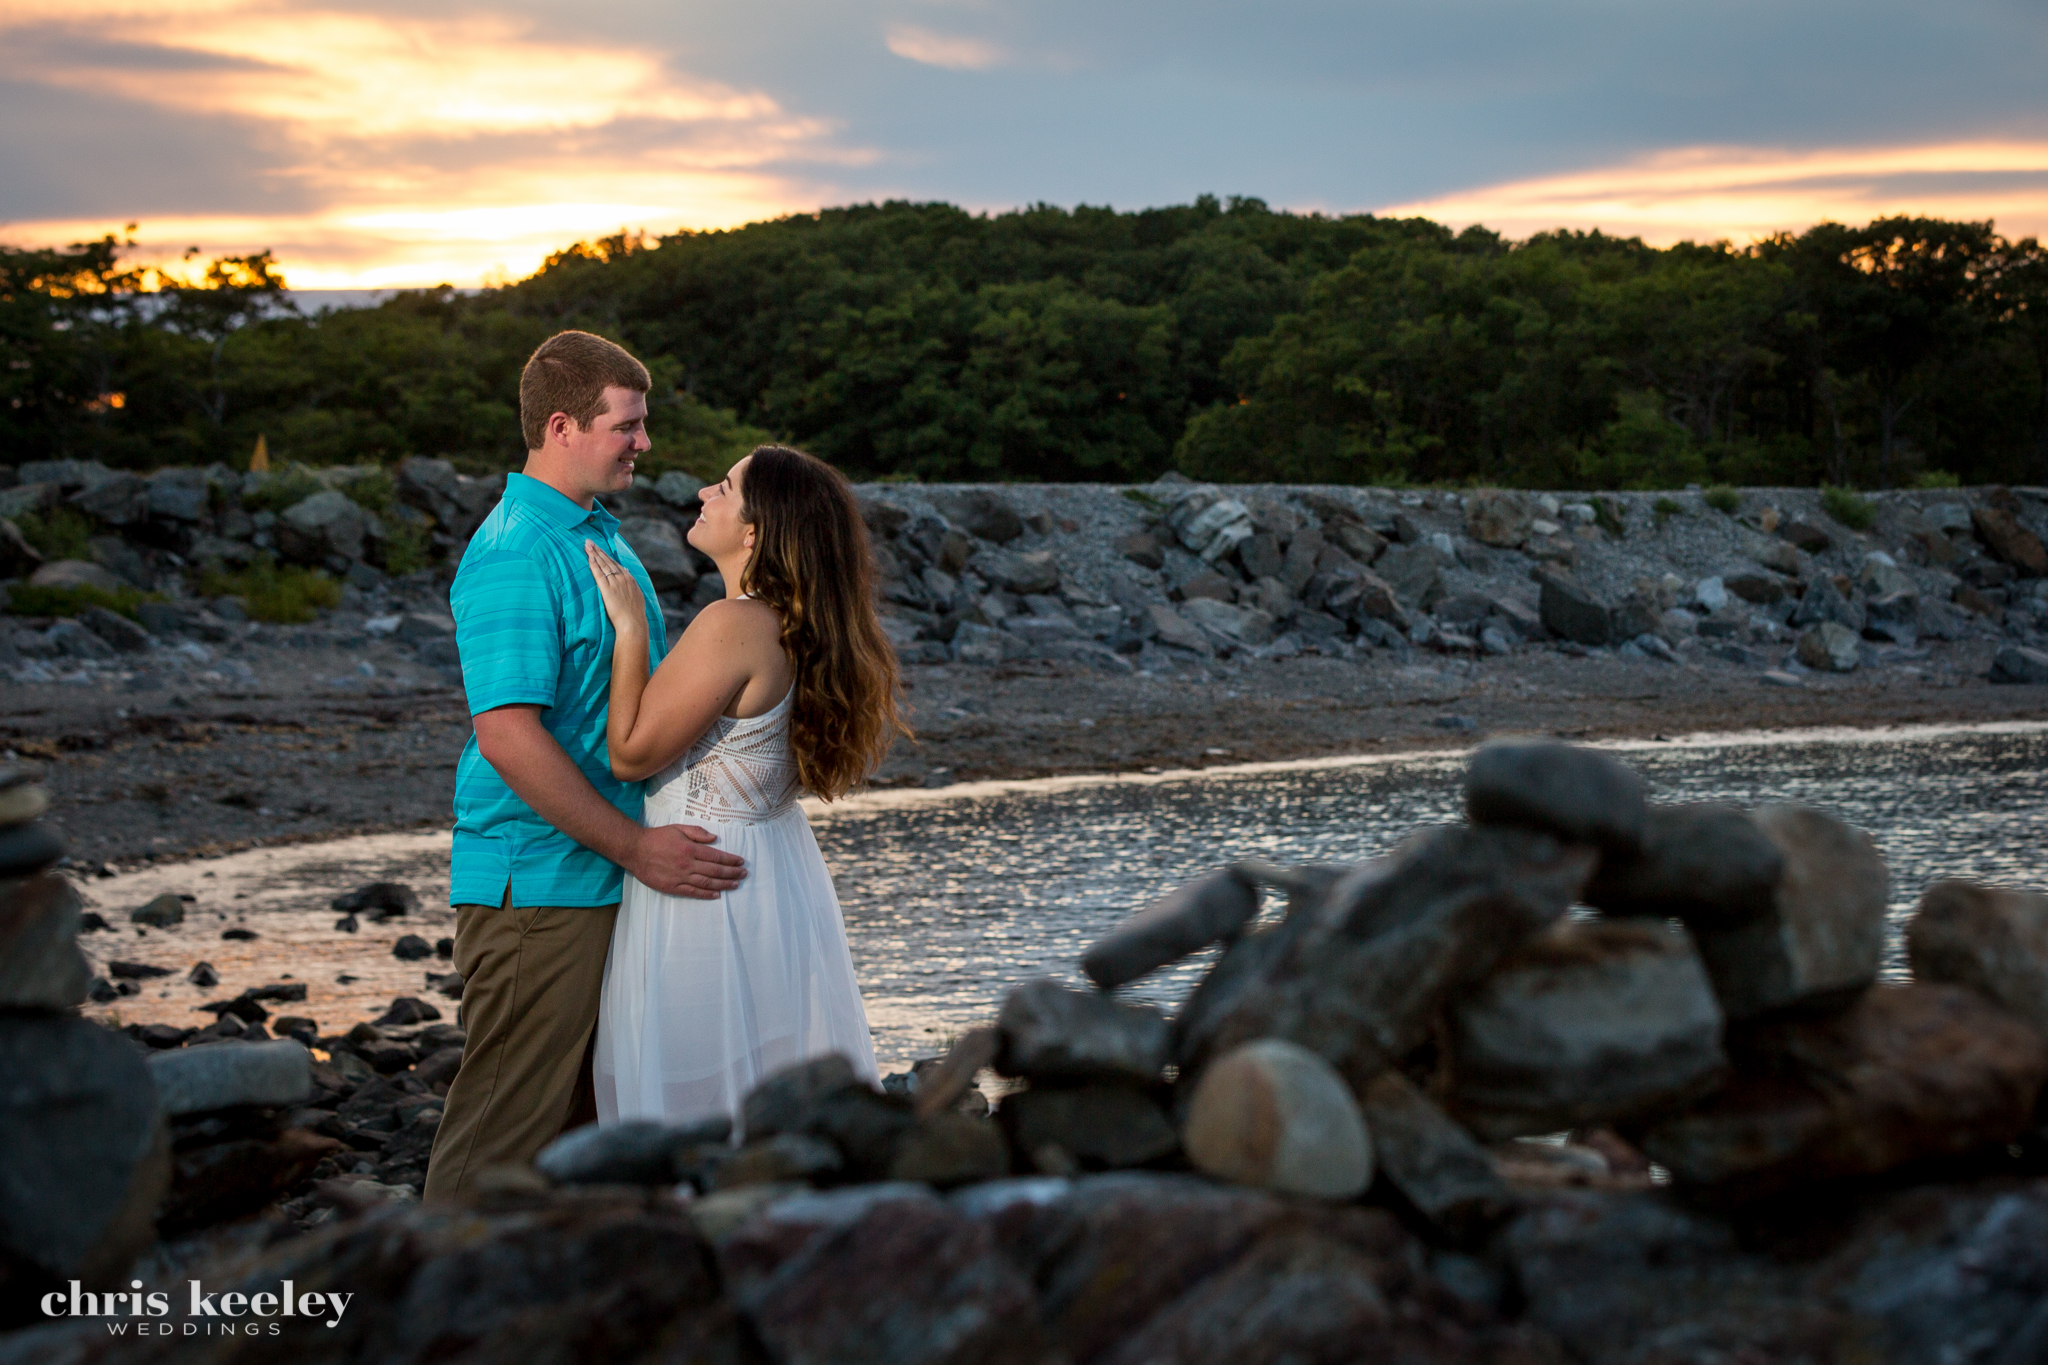 73-engagement-wedding-pictures-rye-new-hampshire-chris-keeley-weddings.jpg